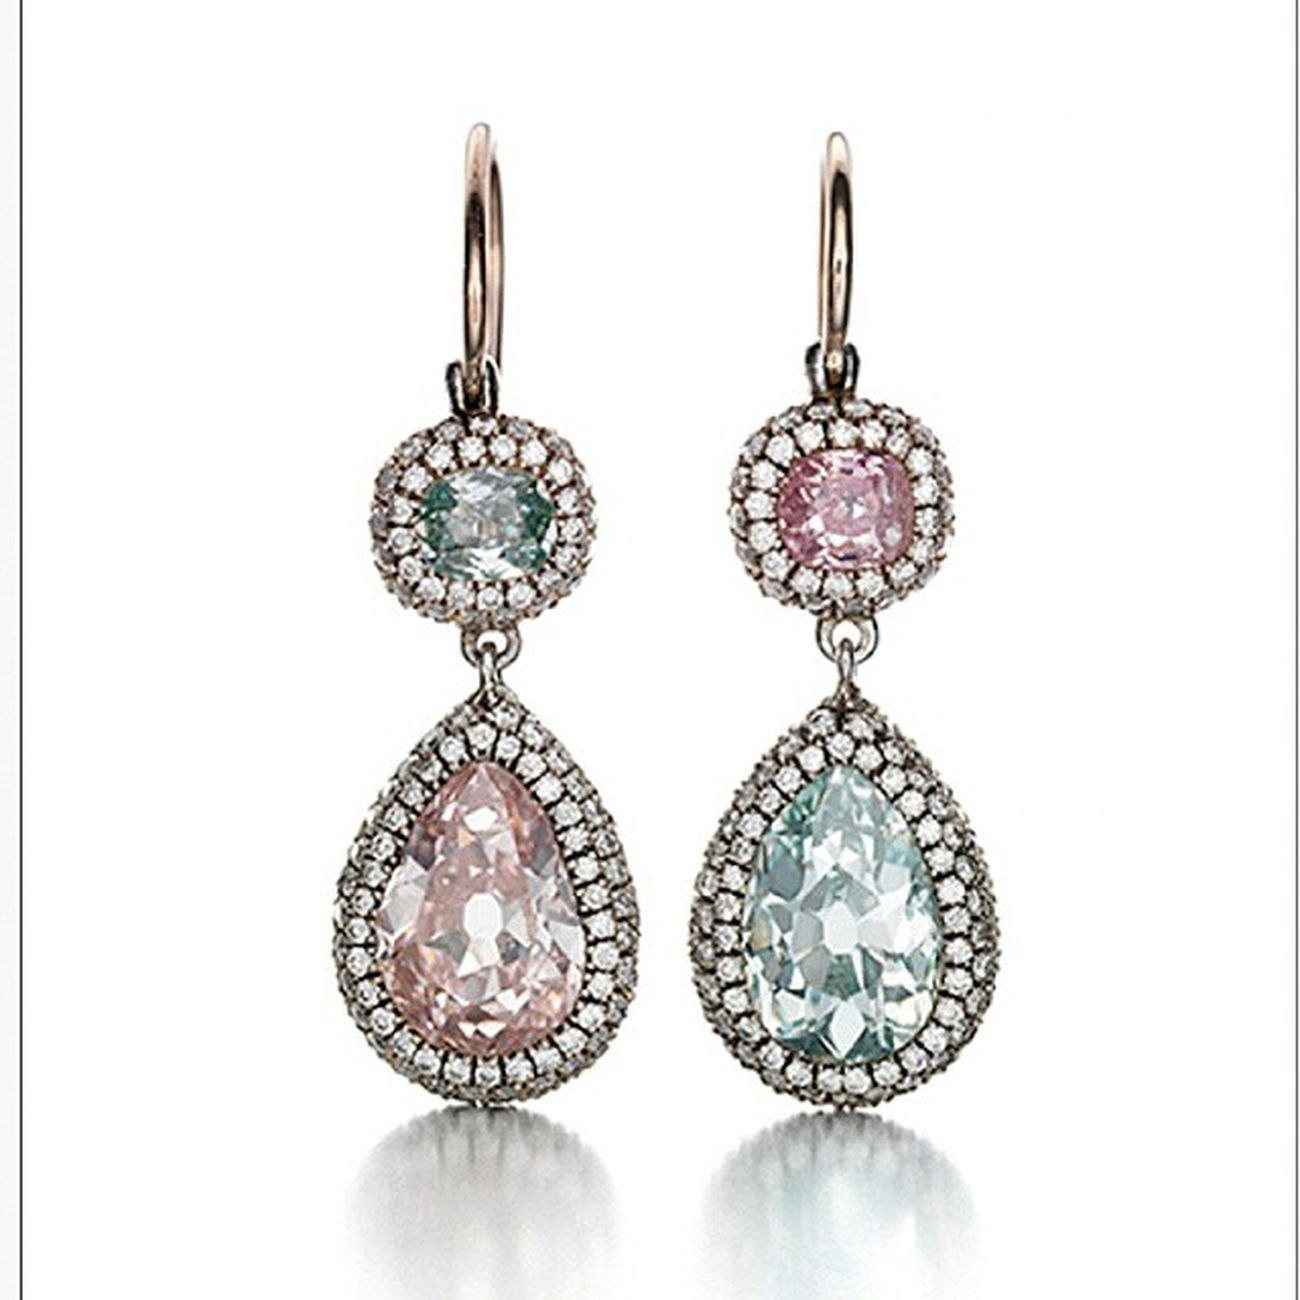 Renkli ruyalar😊💤Pink and Blue Diamonds Earrings by @Siegelson in NY Jewellery Jewelry Jewelryaddiction Joias Gioelli Fashion Fashioninsta Sweetdreams  Gorgeous Luxury Precious Pretty Chic Highjewelry Hautejoaillerie Maison